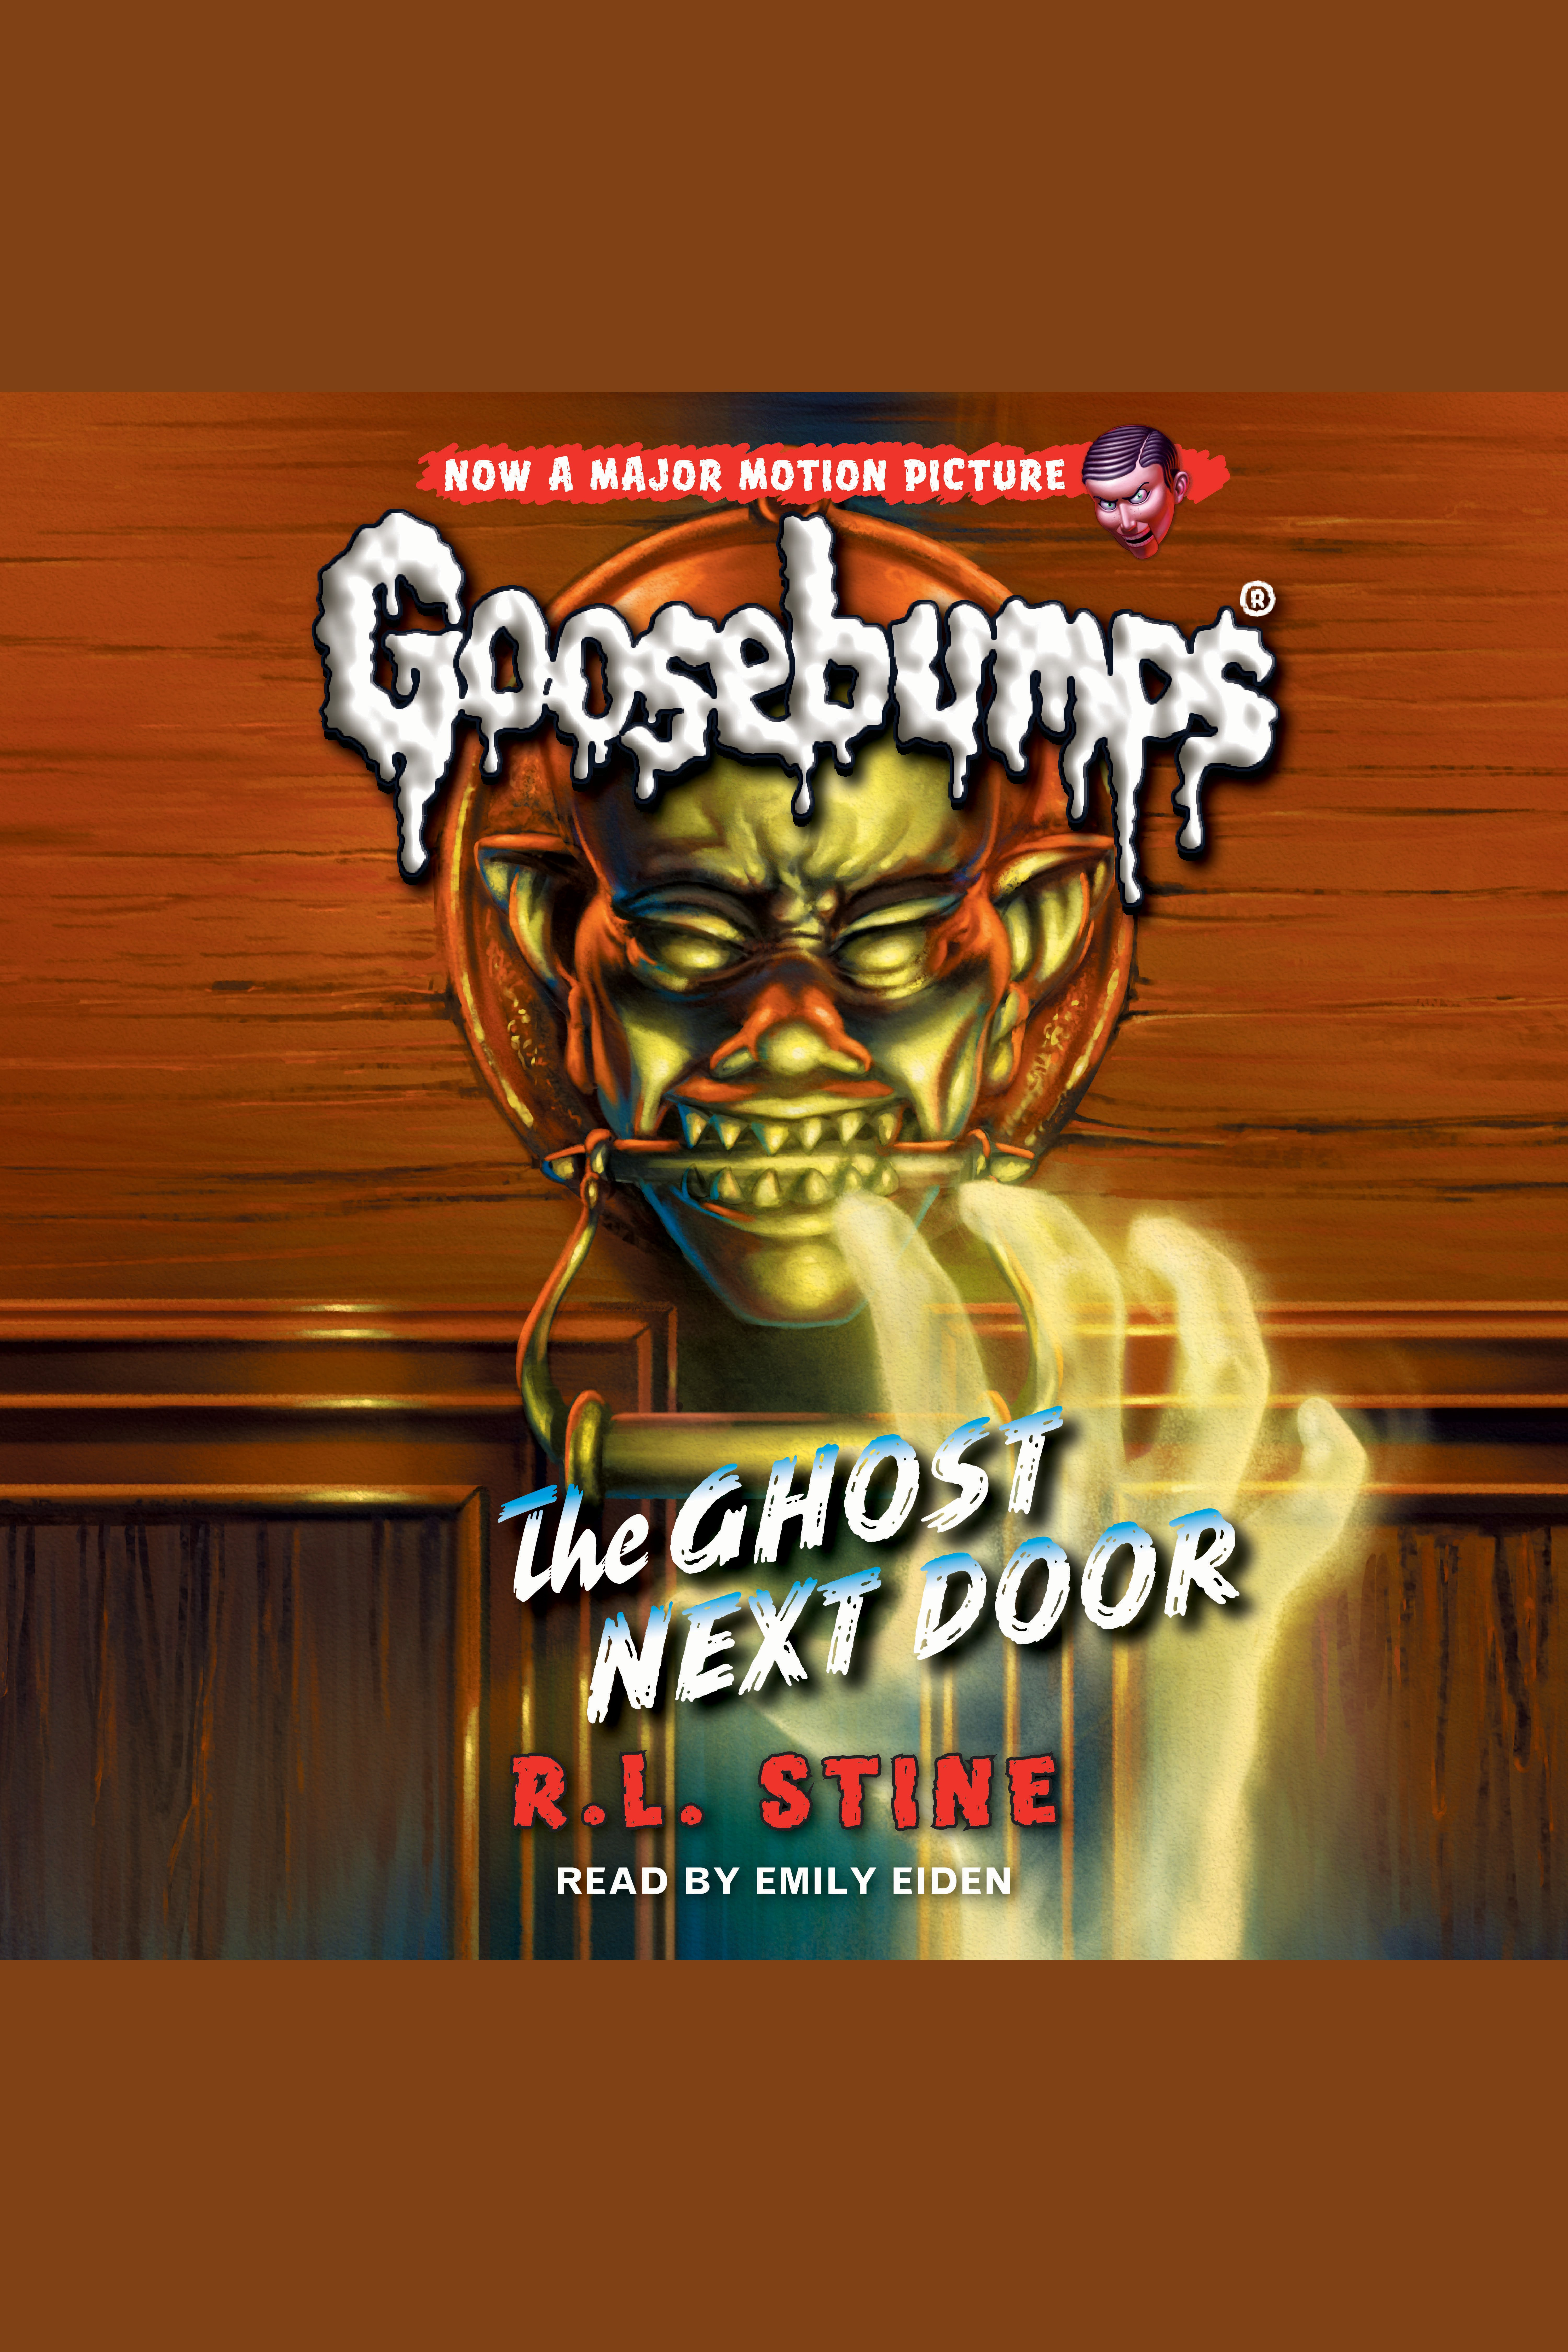 Classic Goosebumps The Ghost Next Door cover image